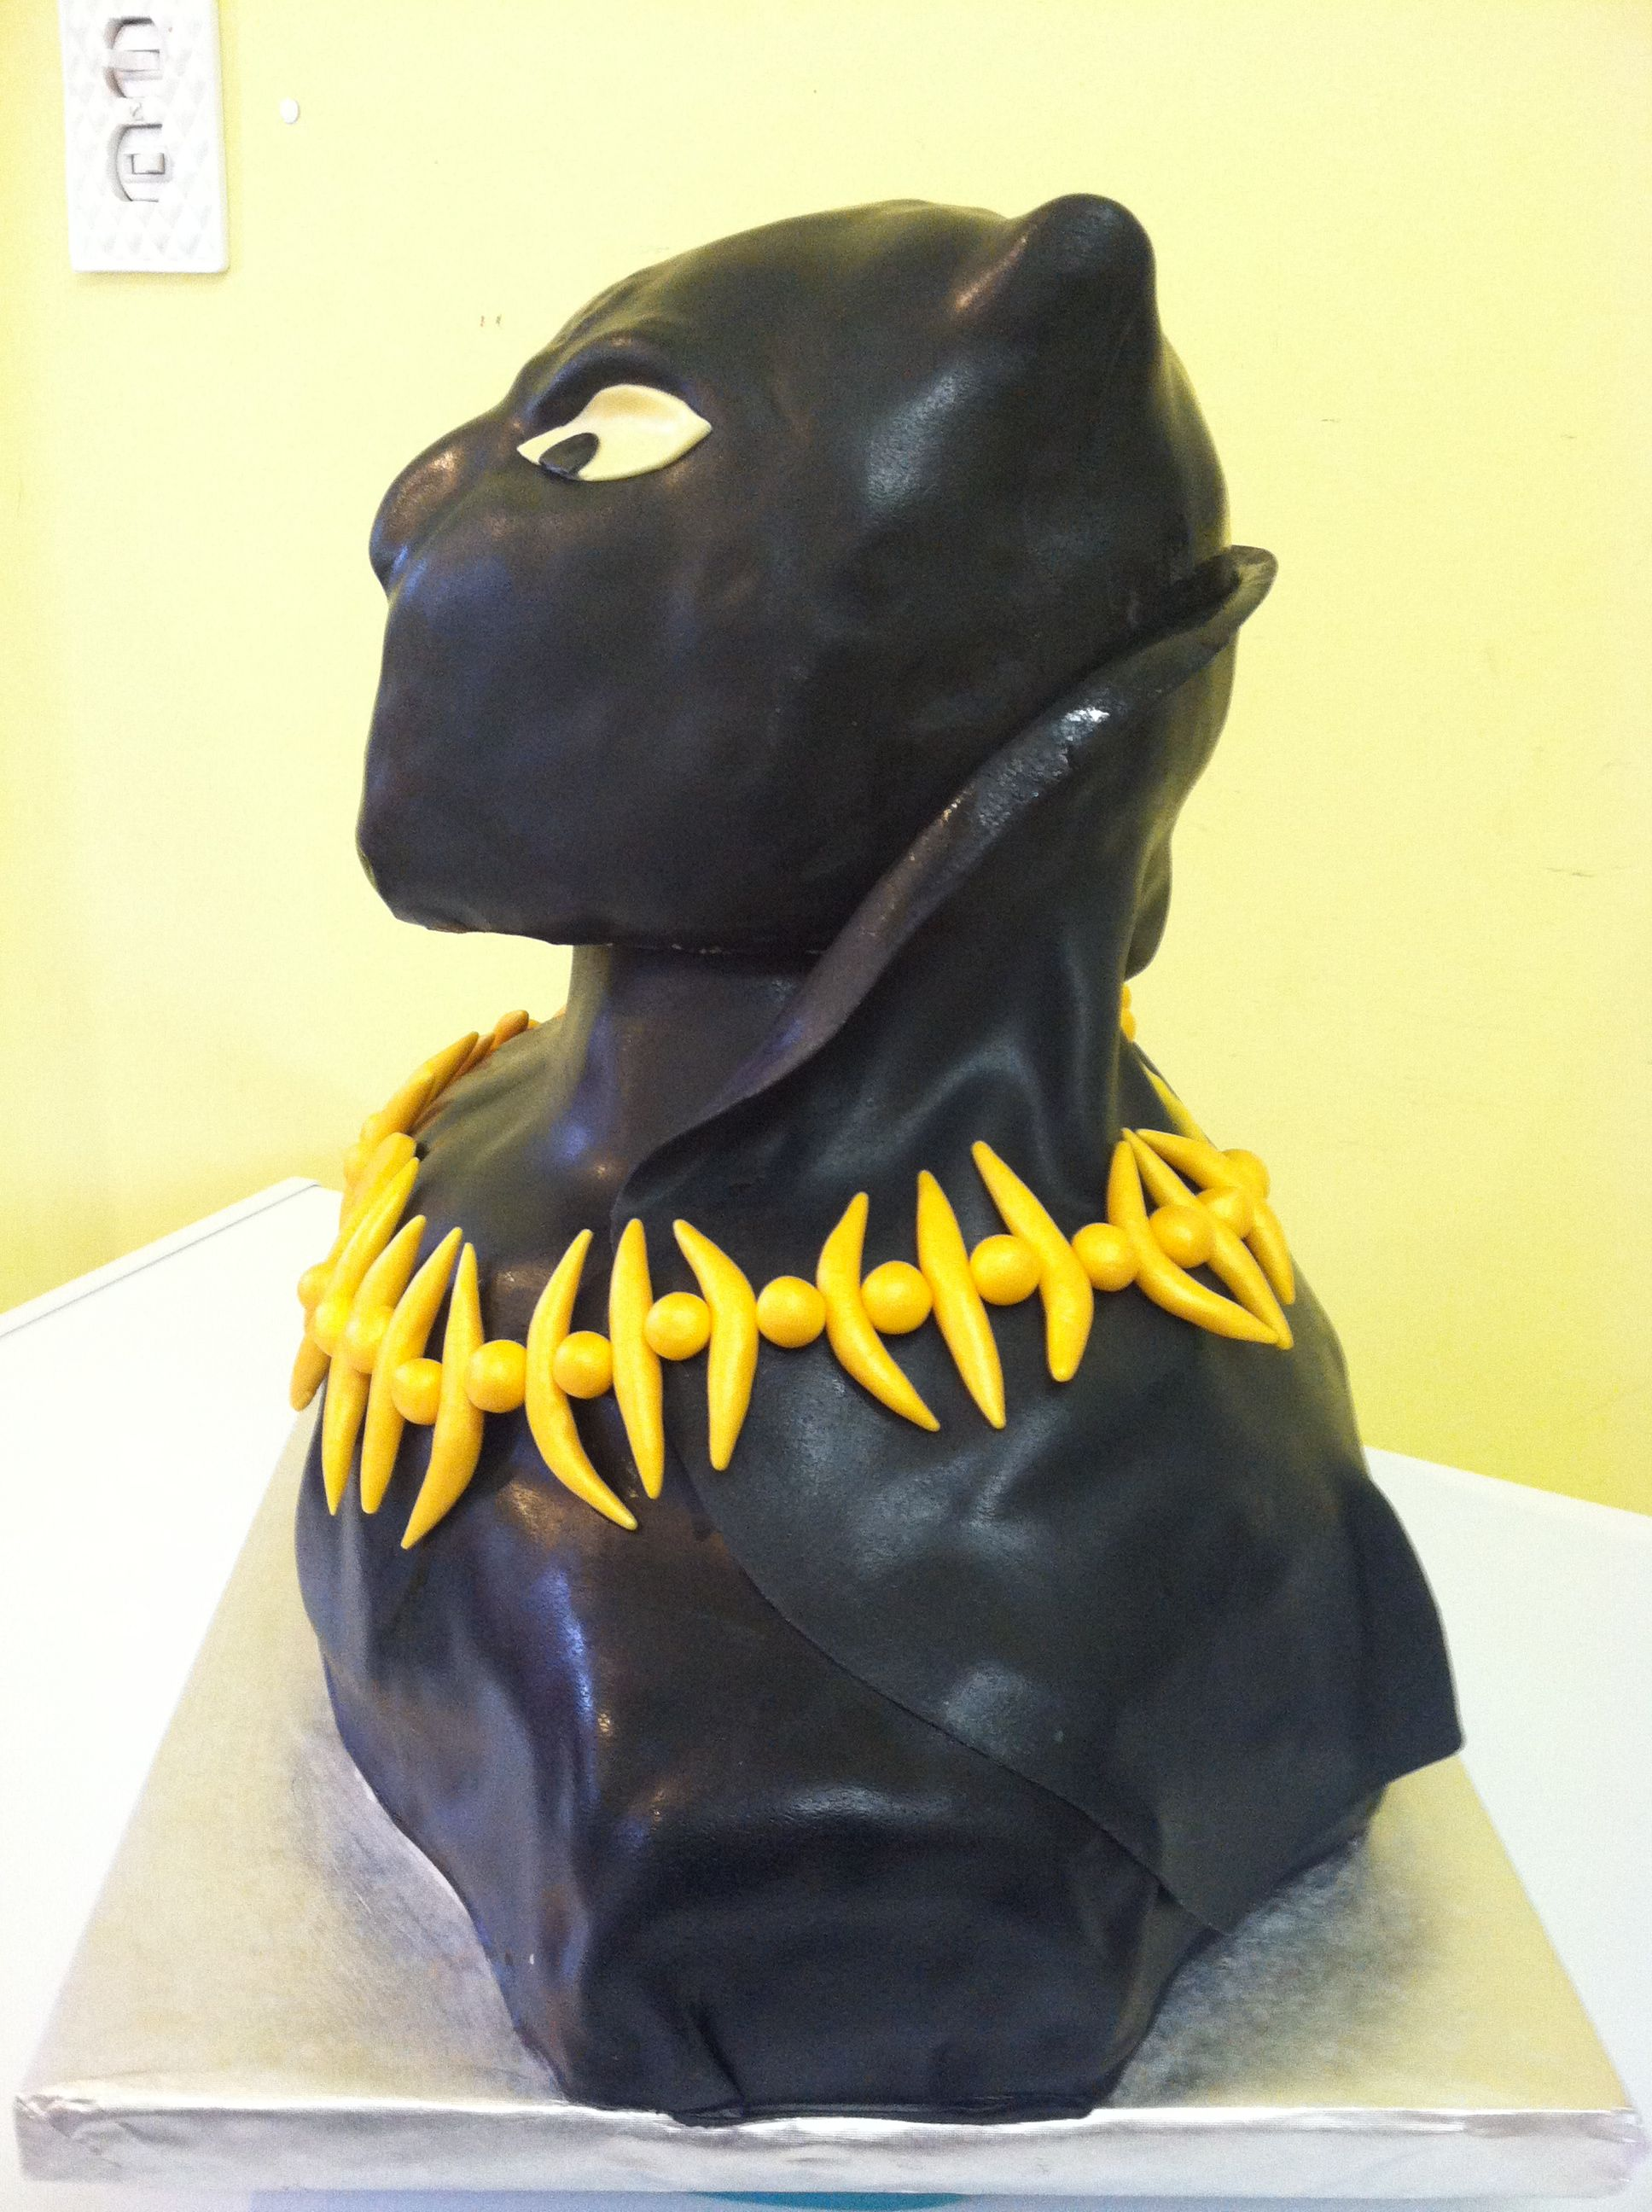 Avengers Black Panther Cake Front View The head is made of rice